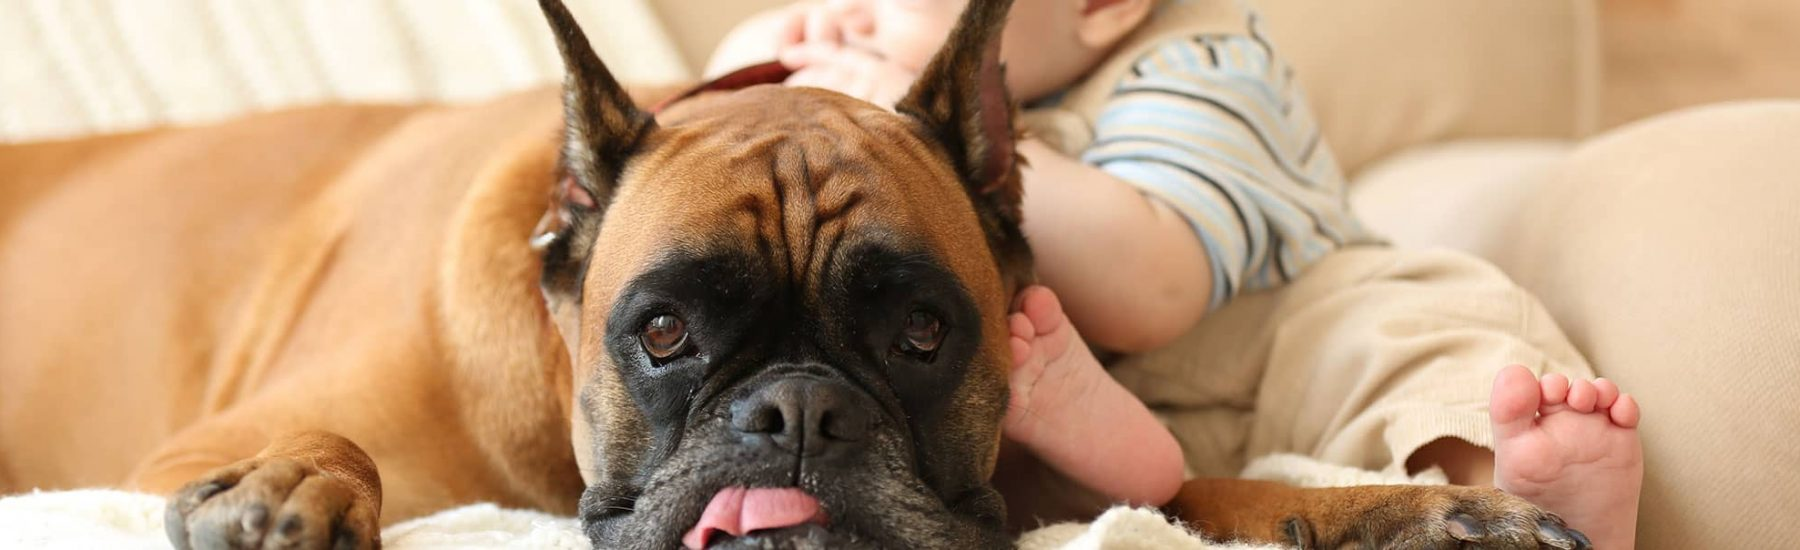 A dog with their tongue sitting beside a baby